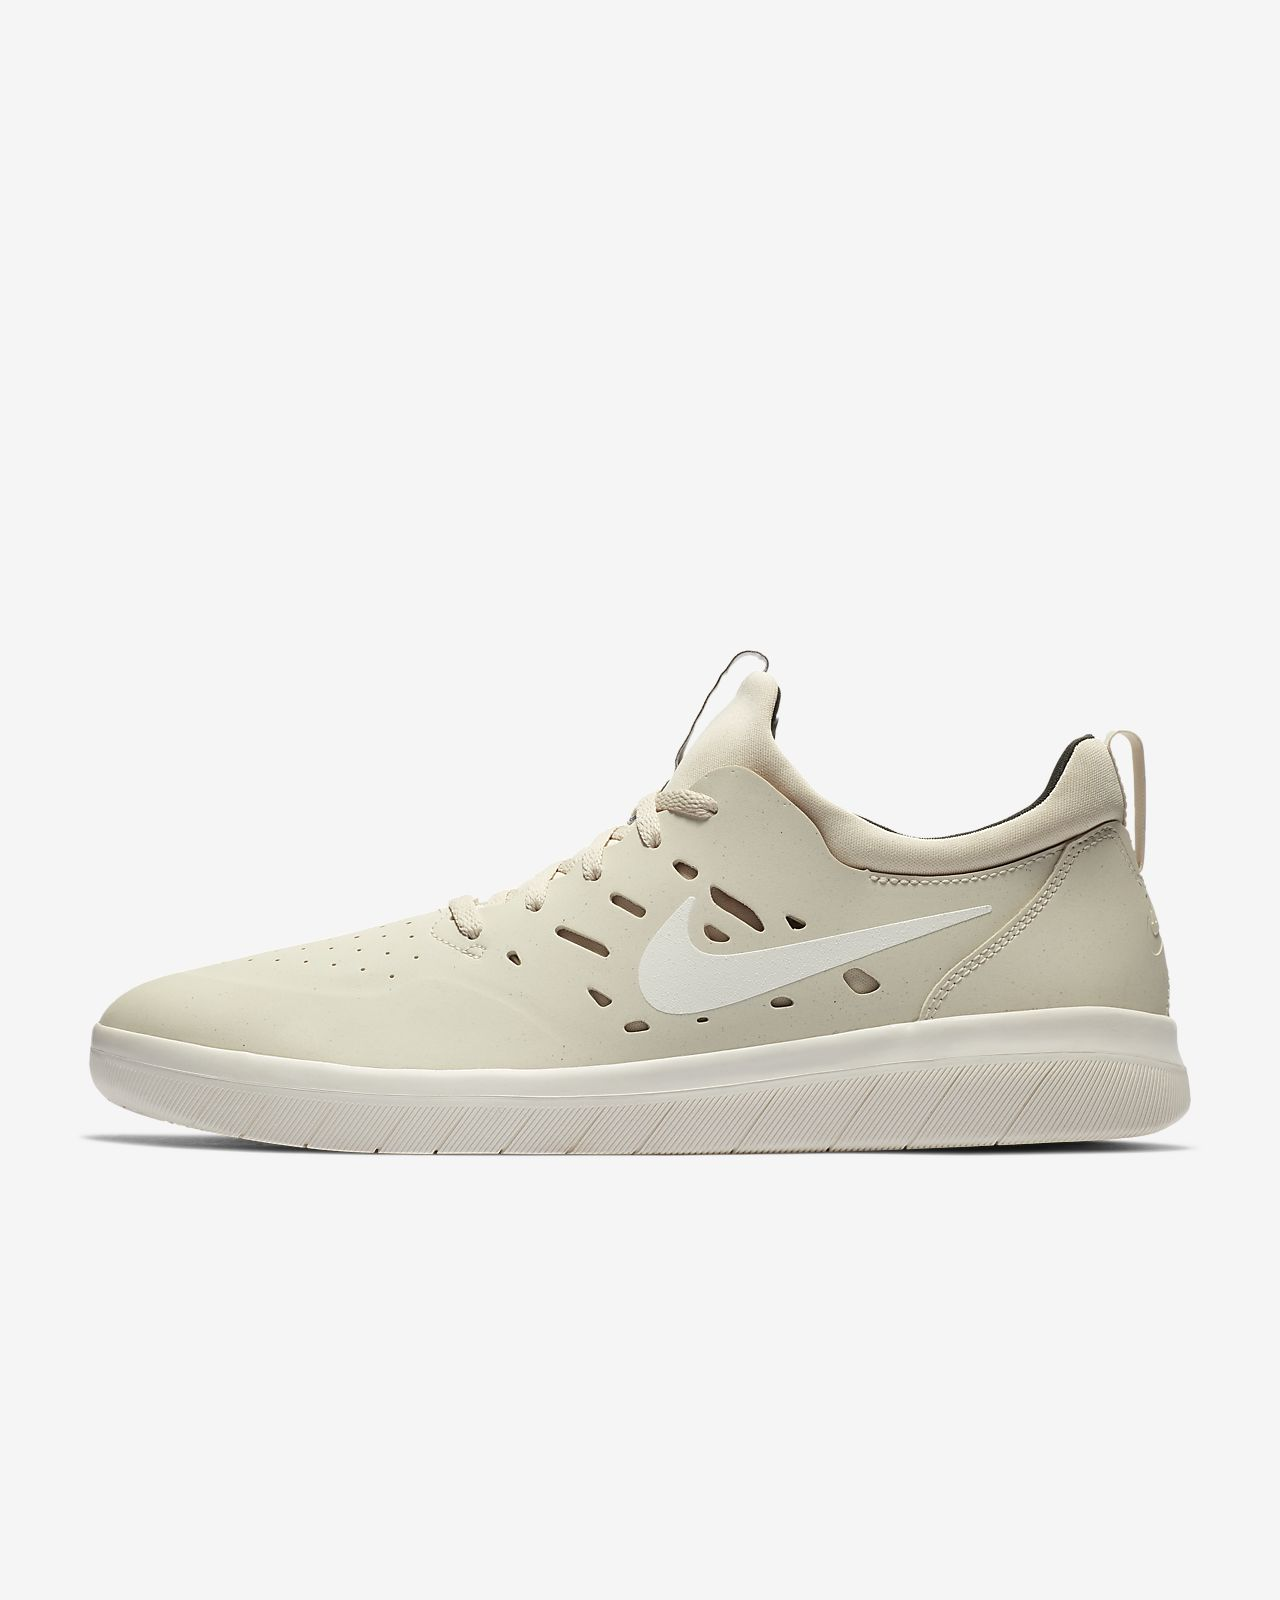 Skateboard Chaussure De Pour Nyjah Homme Sb Be Nike 5f77P